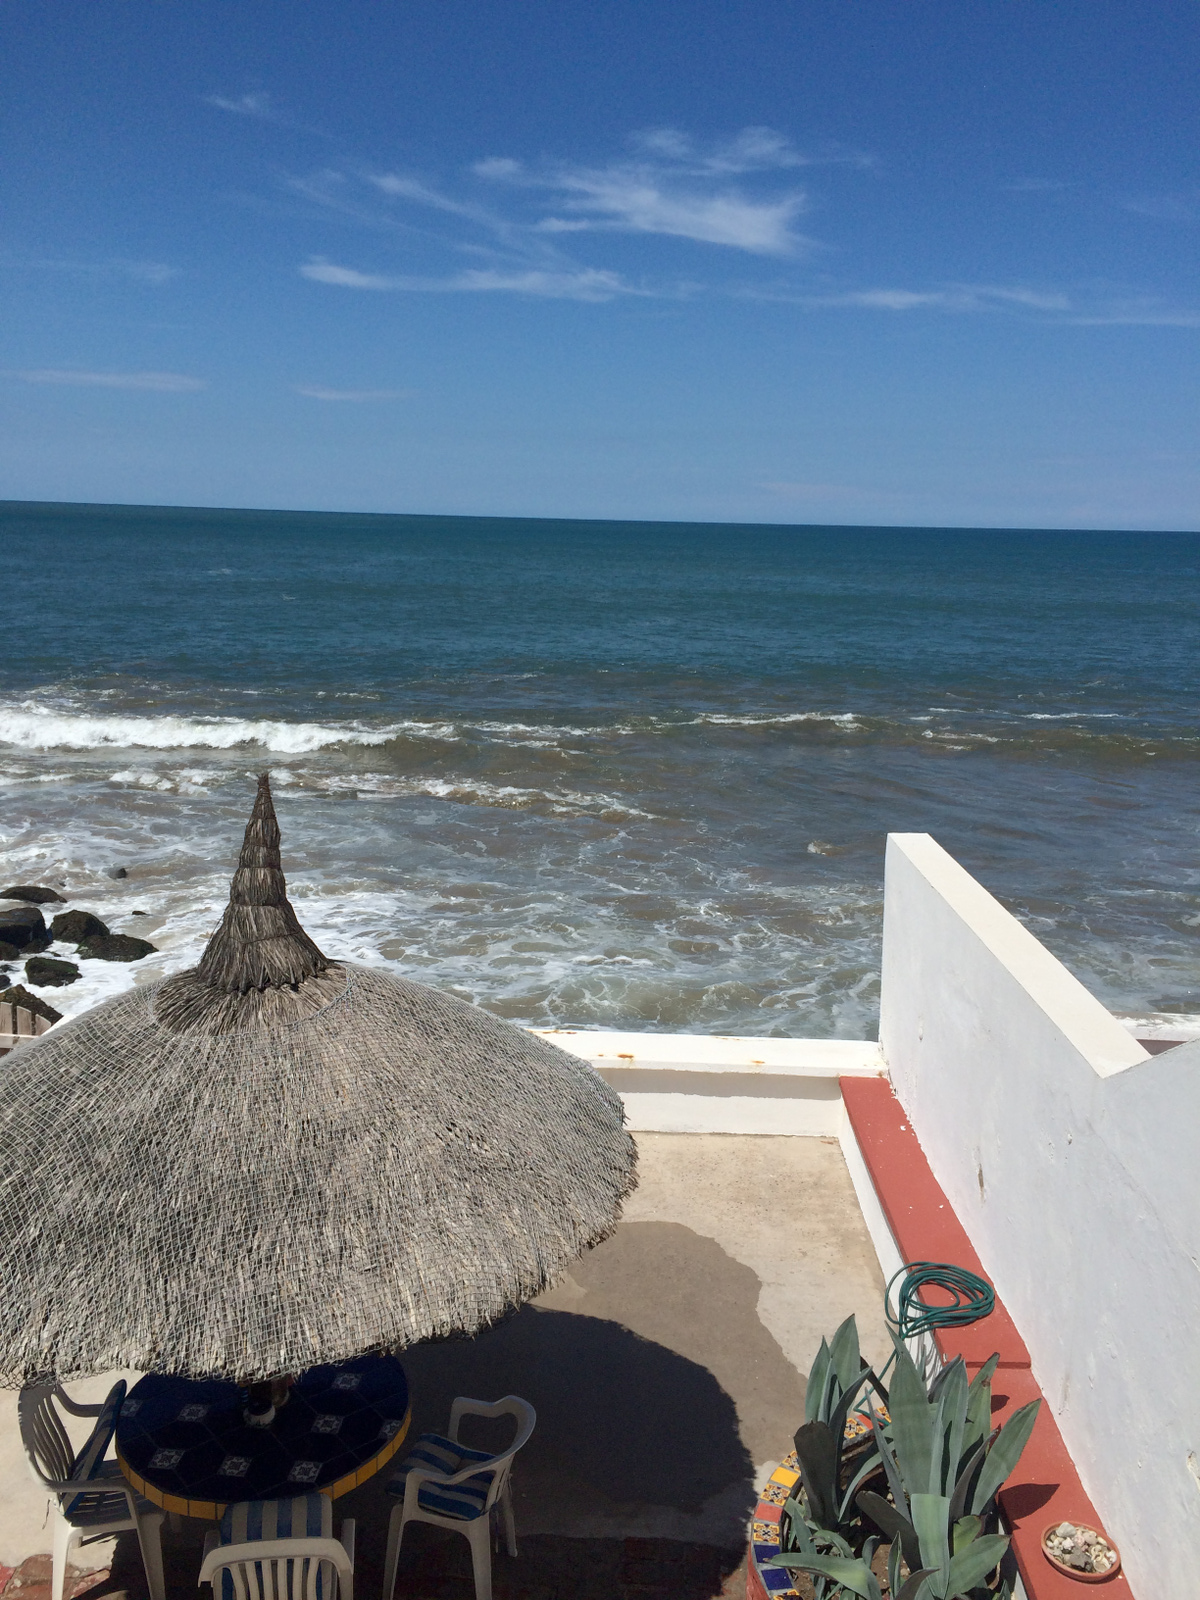 - View the first year in Mexico